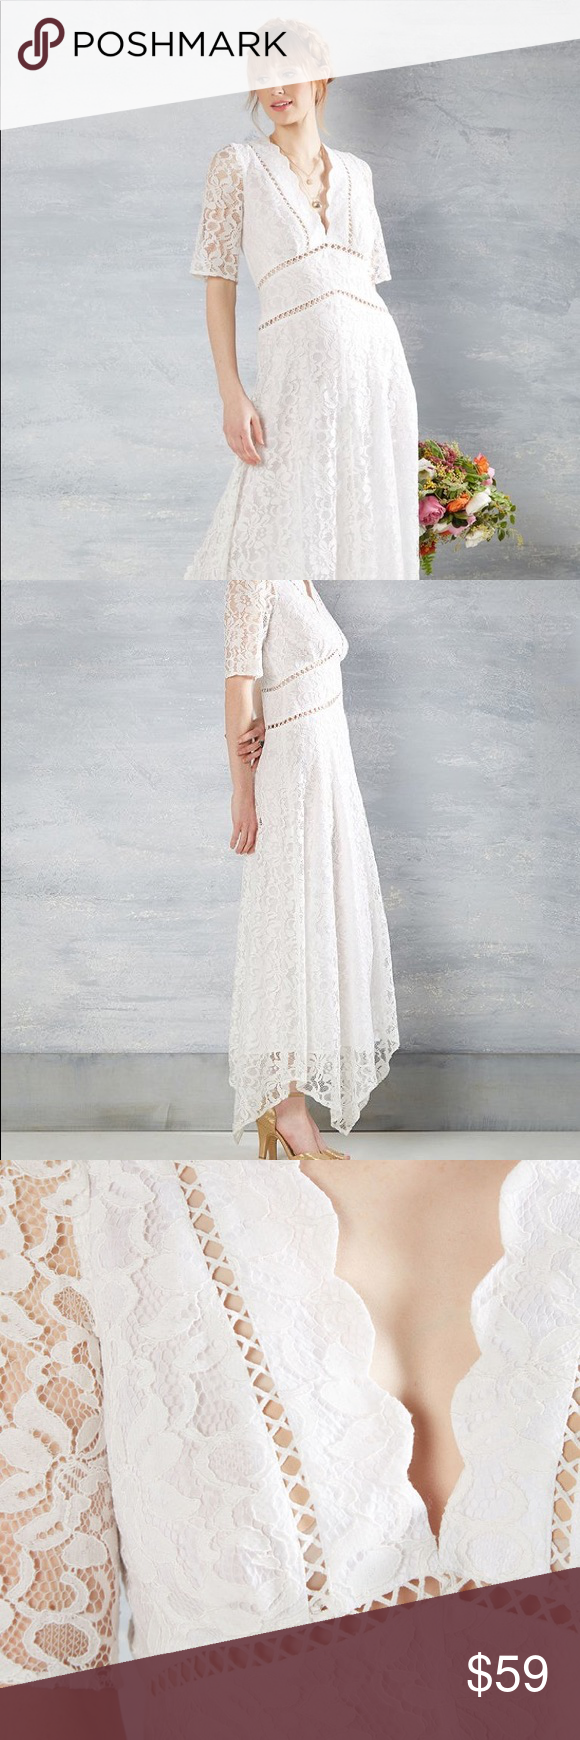 Wedding dresses for large busts  Modcloth Lace u Mesh Flowing to the Chapel Dress  ModCloth Dress